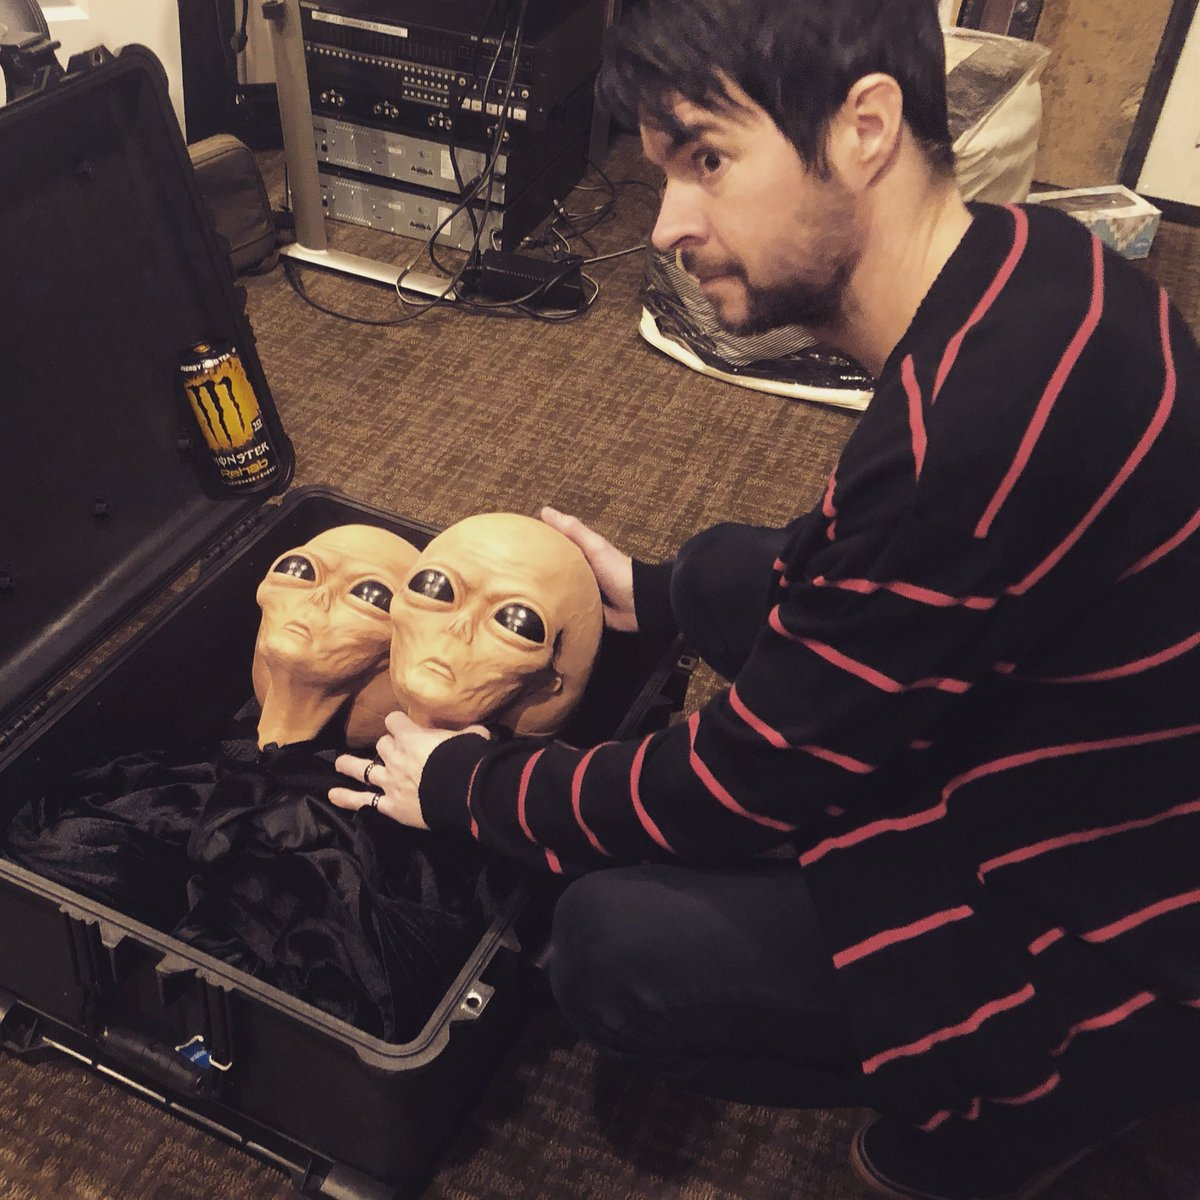 Tucking in our Aliens, Allen and Steve, for their long trip to Arizona Bike Fest! They will see you there! @AzBikeWeek